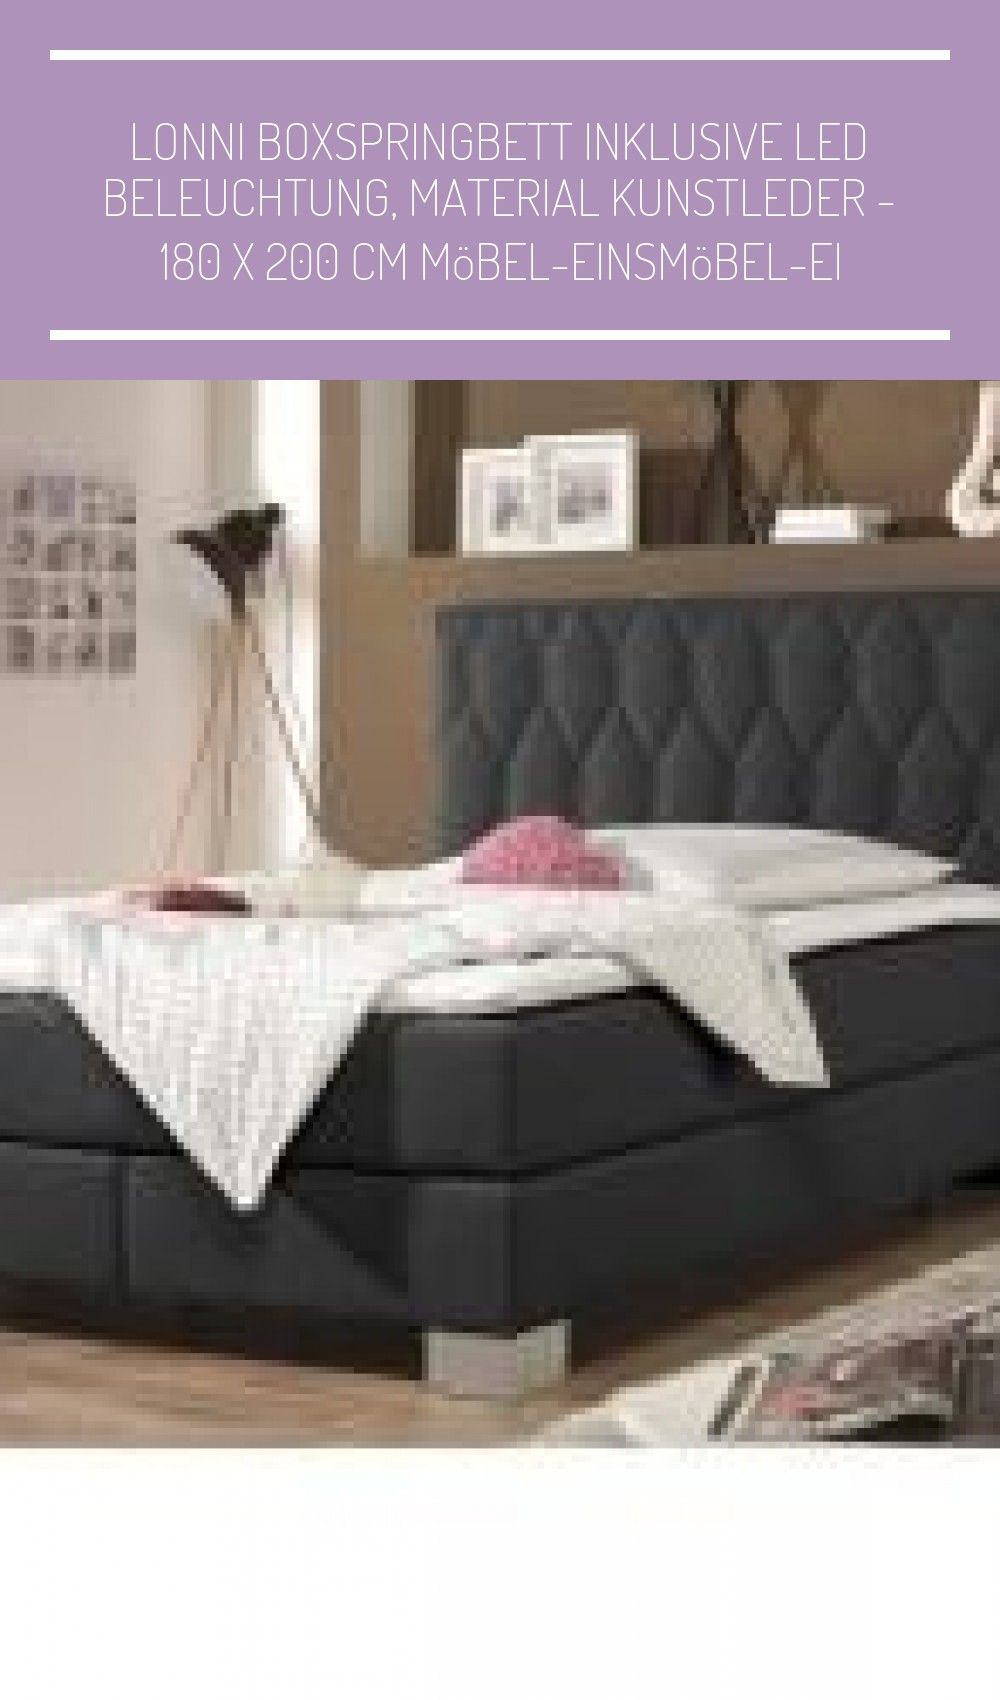 Lonni Boxspringbett Inklusive In 2020 Bed Home Decor